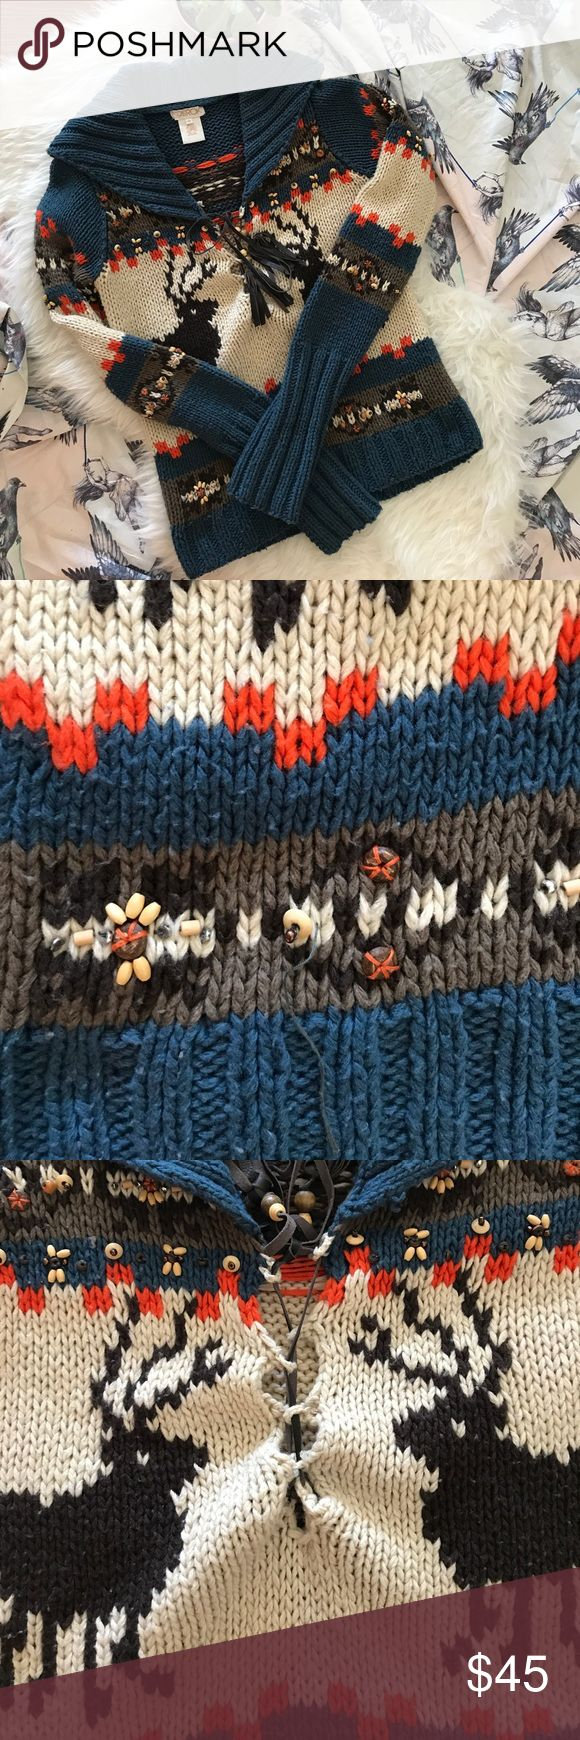 La Rok Woodsman Reindeer Sweater 'Vintage' early 2000's I remember how badly I wanted this seeing it on Jessica Simpson in US weekly! Before all these shopping sites when you had to call stores!!! Great thick sweater adorned with little beads everywhere and a leather Lace up strap. The strap is broken so I just tied together which doesn't show at all but I am sure there is a better fix other than that excellent condition pre worn sweater mild piling 26 length 19 chest arms 5 arm length not…